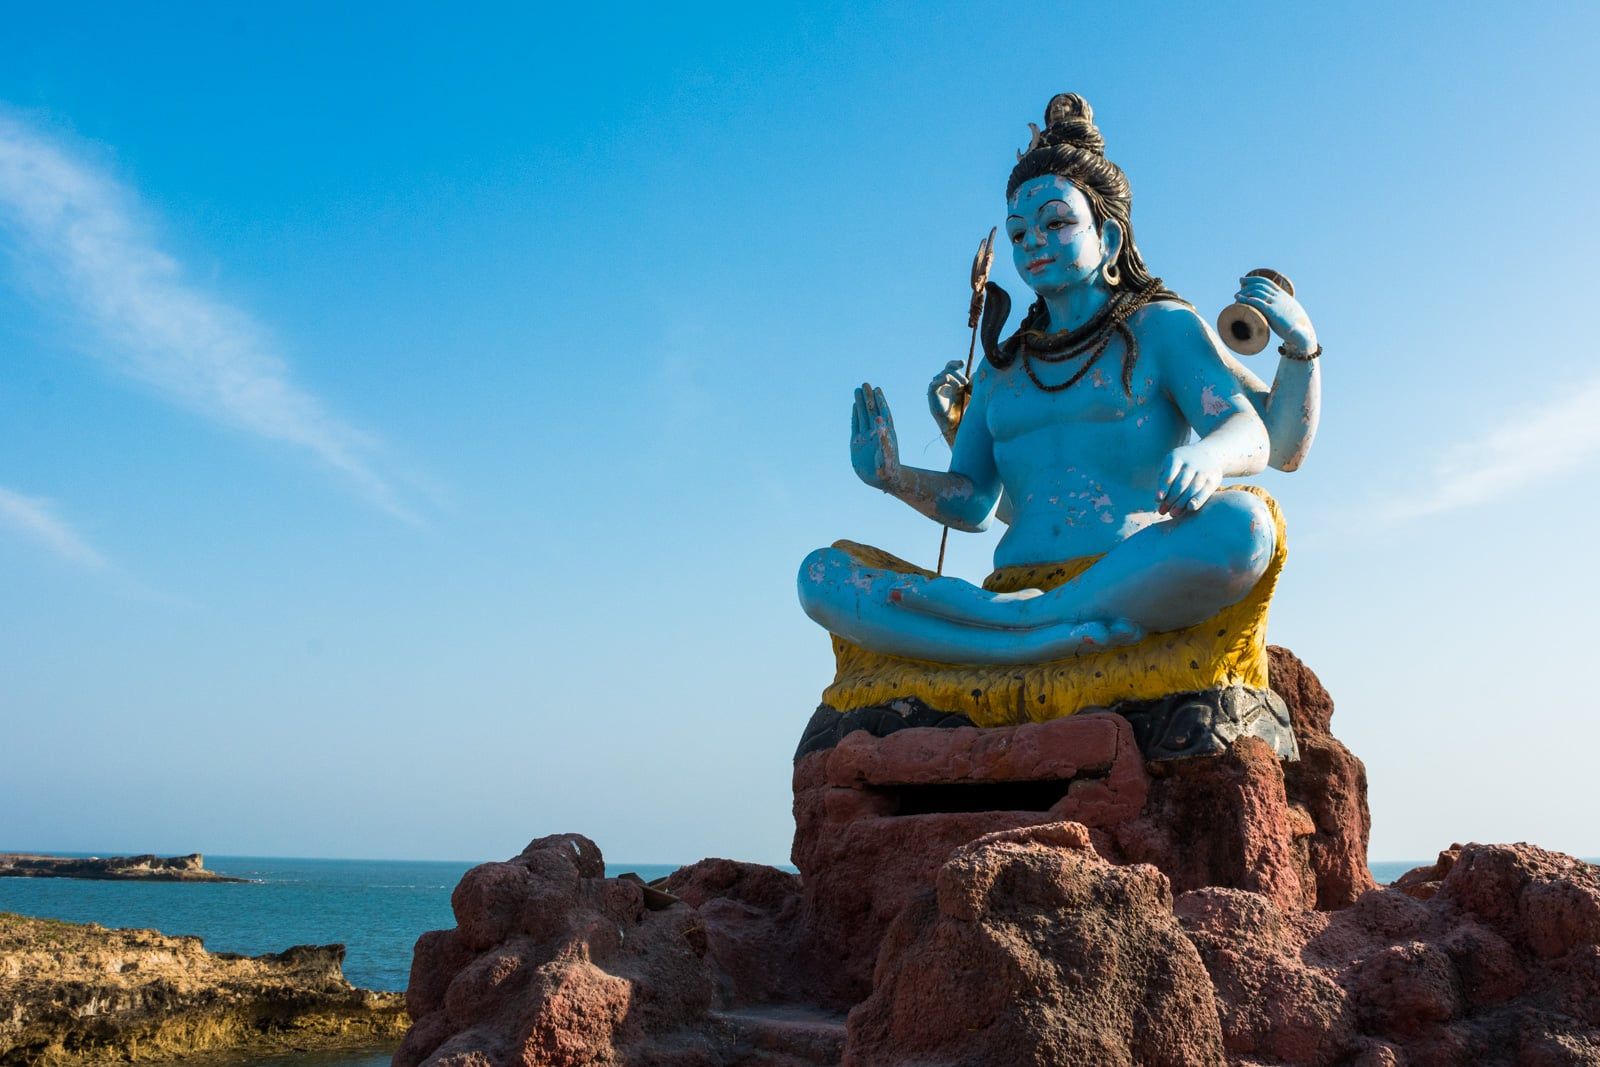 Guide to smoking weed in India - A Shiva statue in Diu, India - Lost With Purpose travel blog